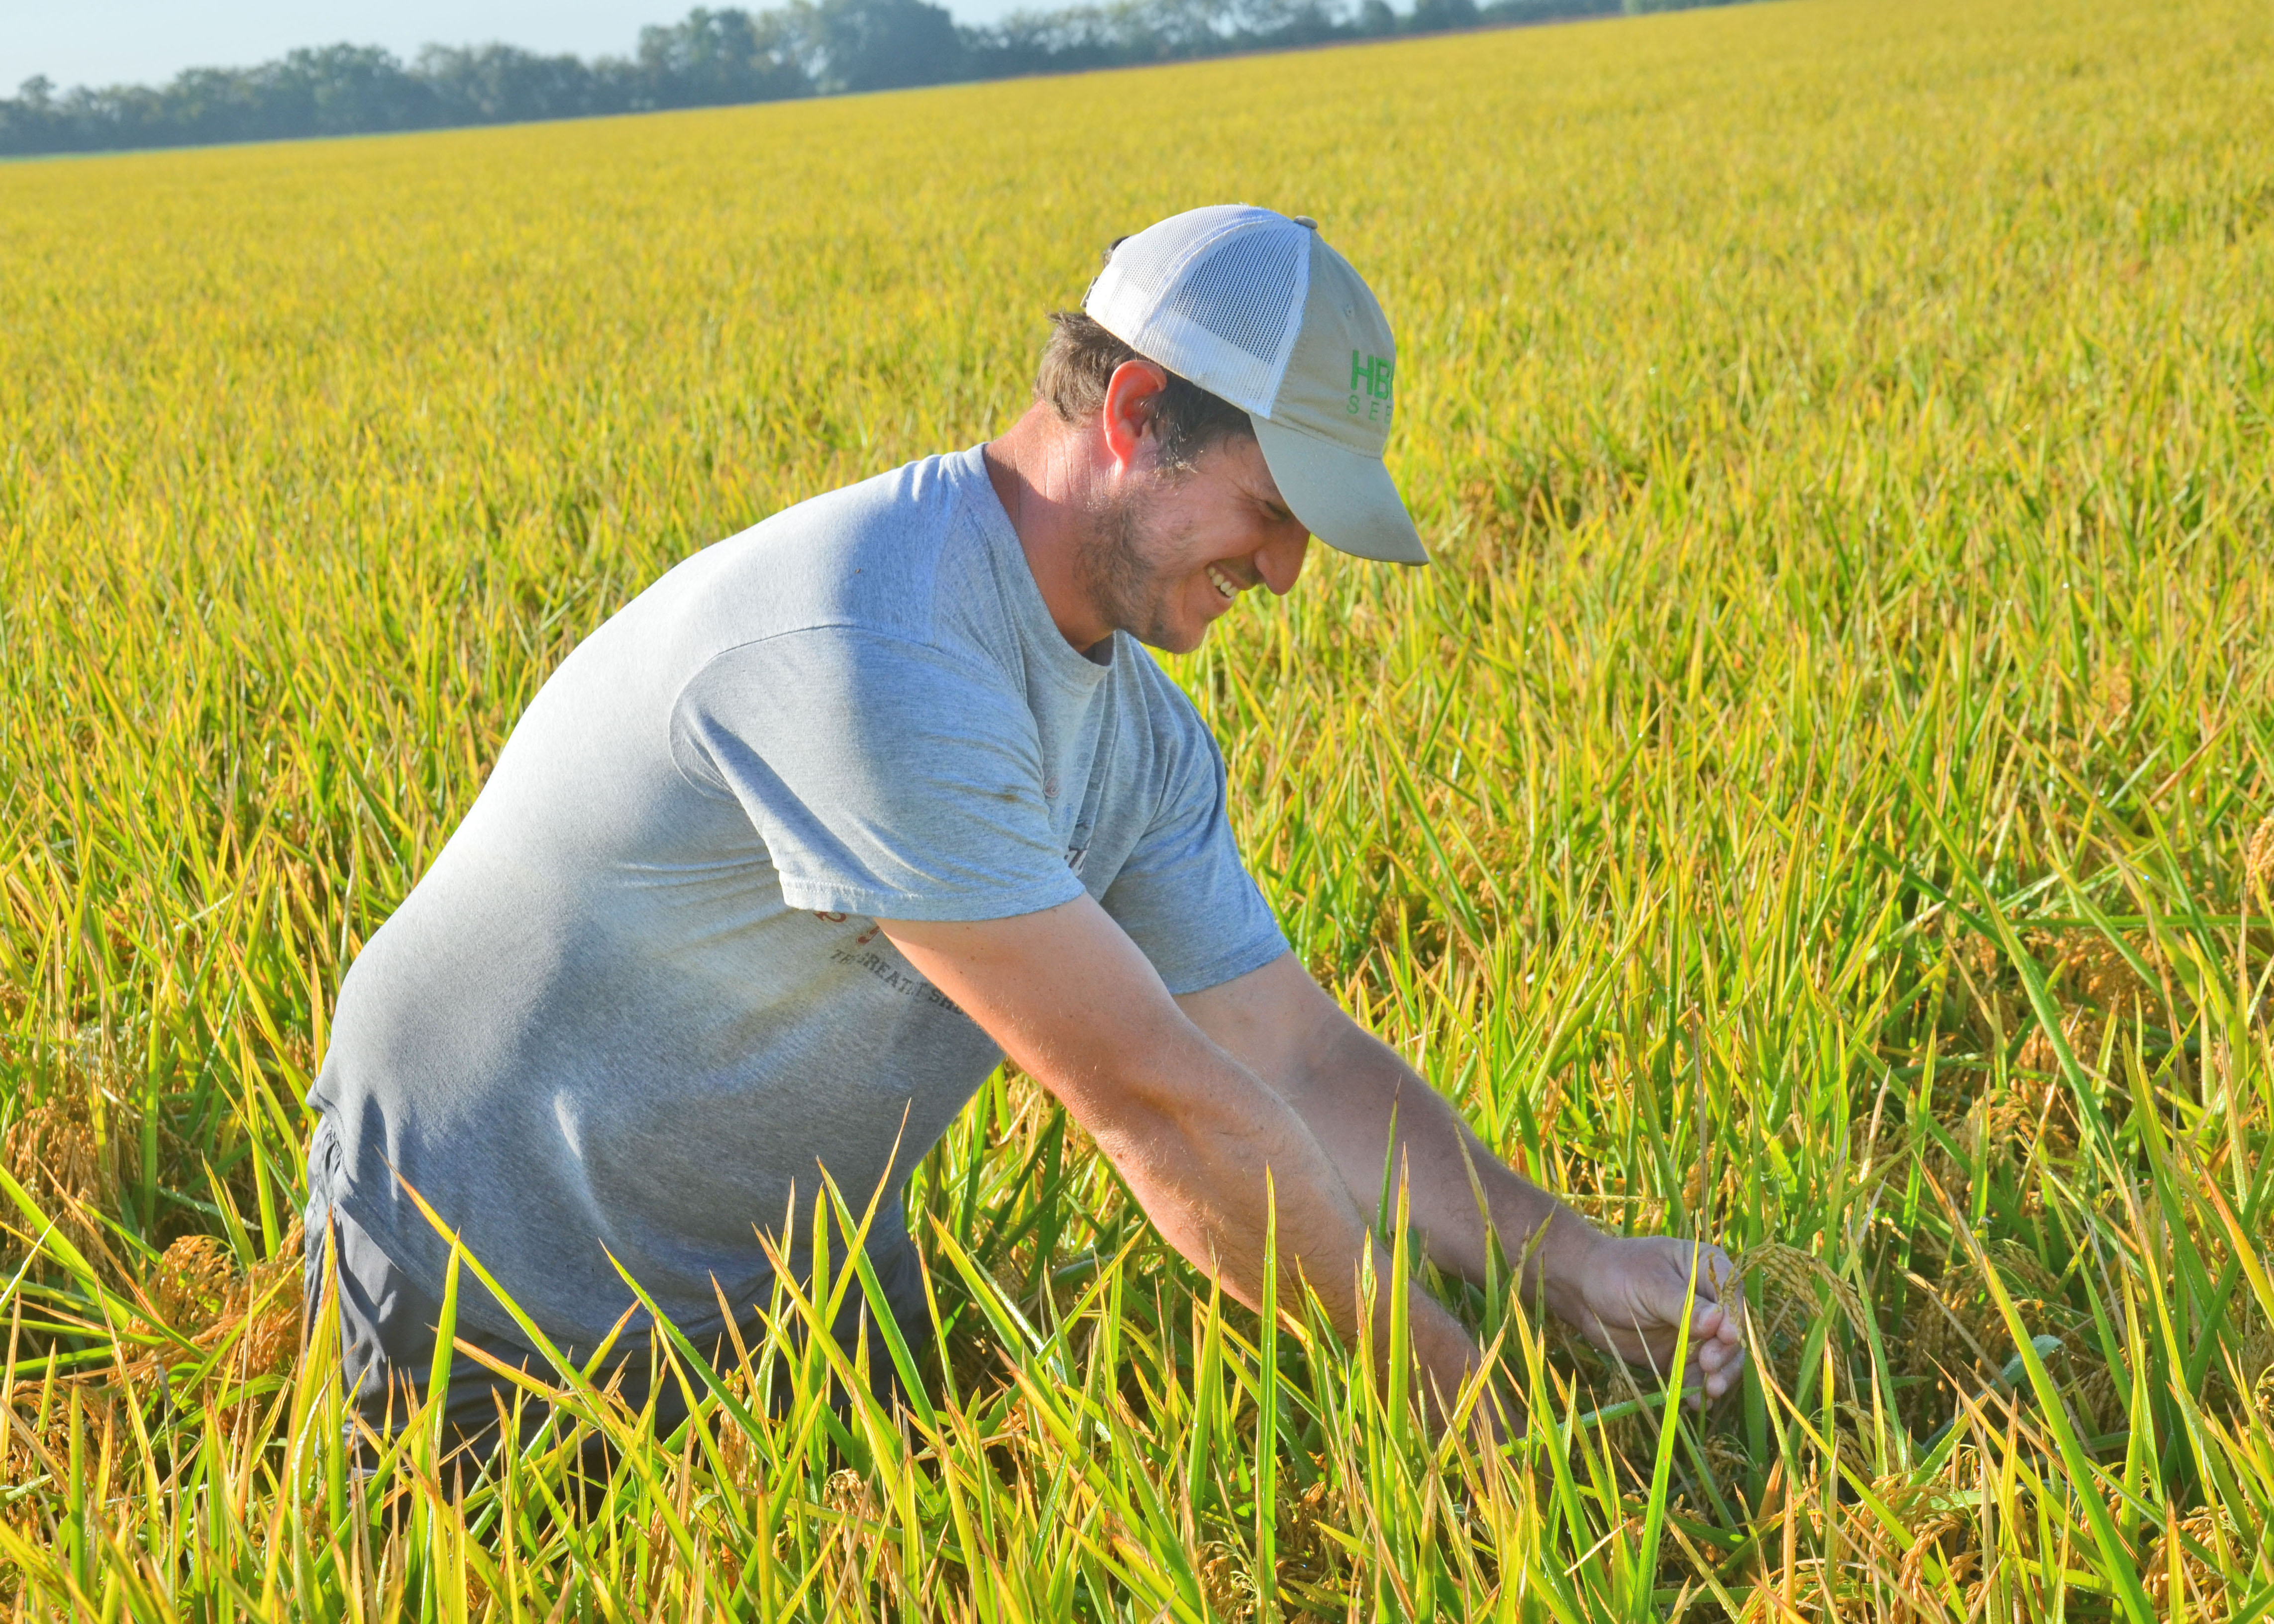 Rick Zaunbrecher in rice field1.jpg thumbnail